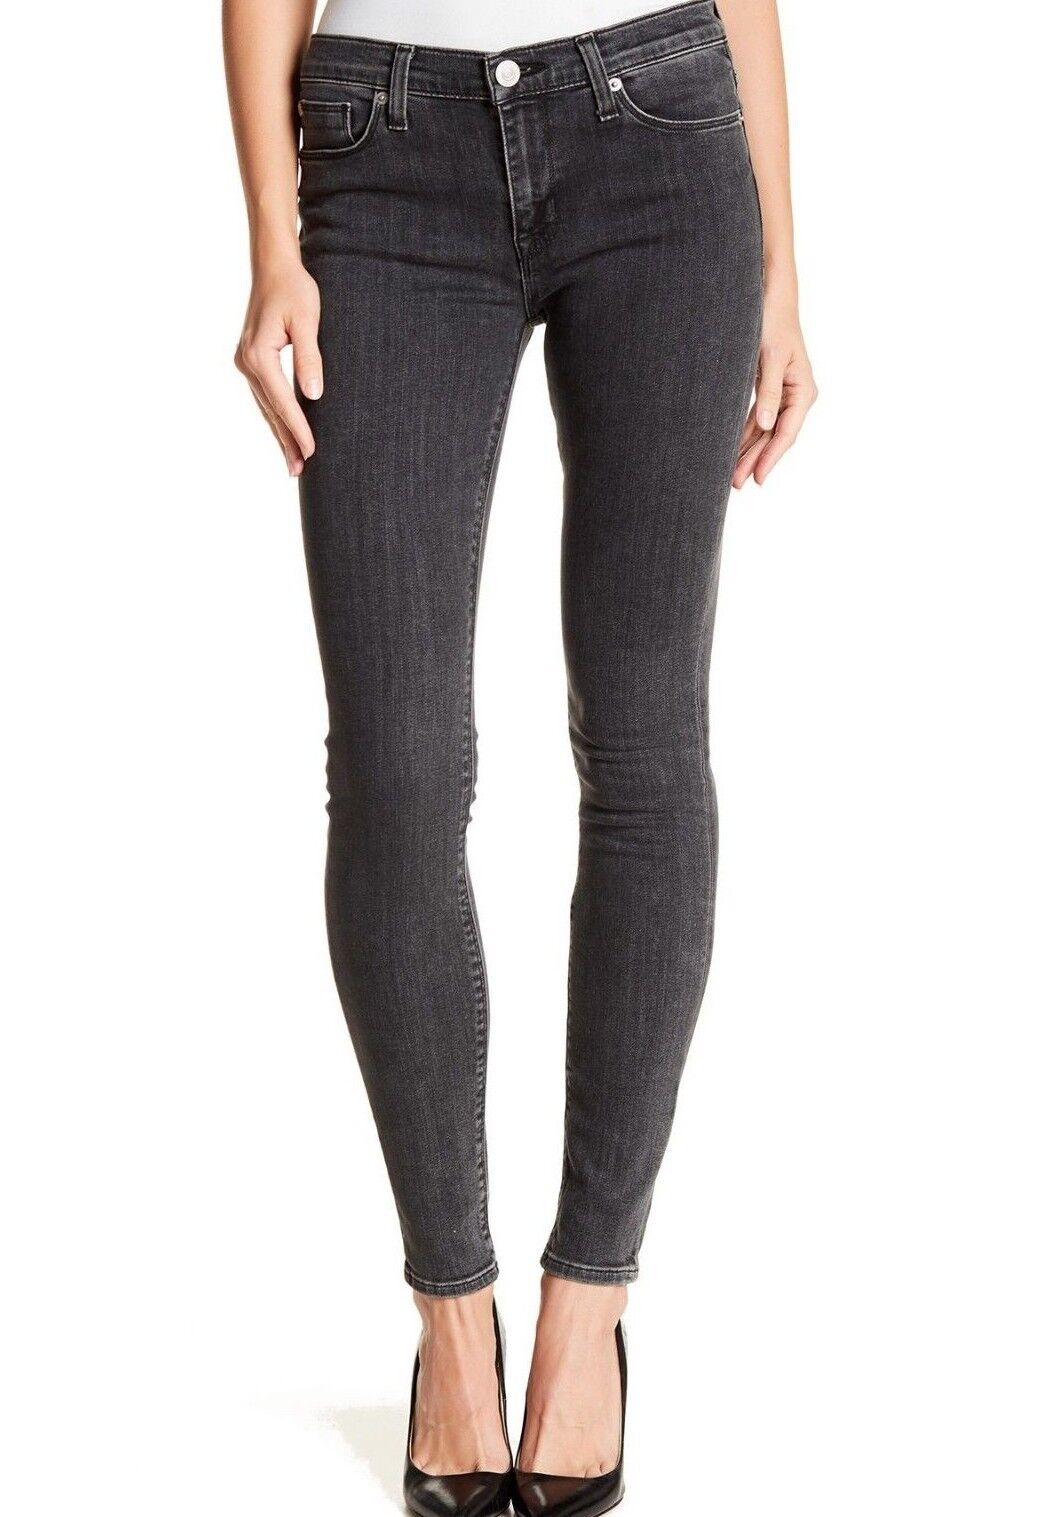 195 NWT HUDSON Sz26 NICO MIDRISE SUPER SKINNY-STRETCH JEANS VACANY CHARCOAL